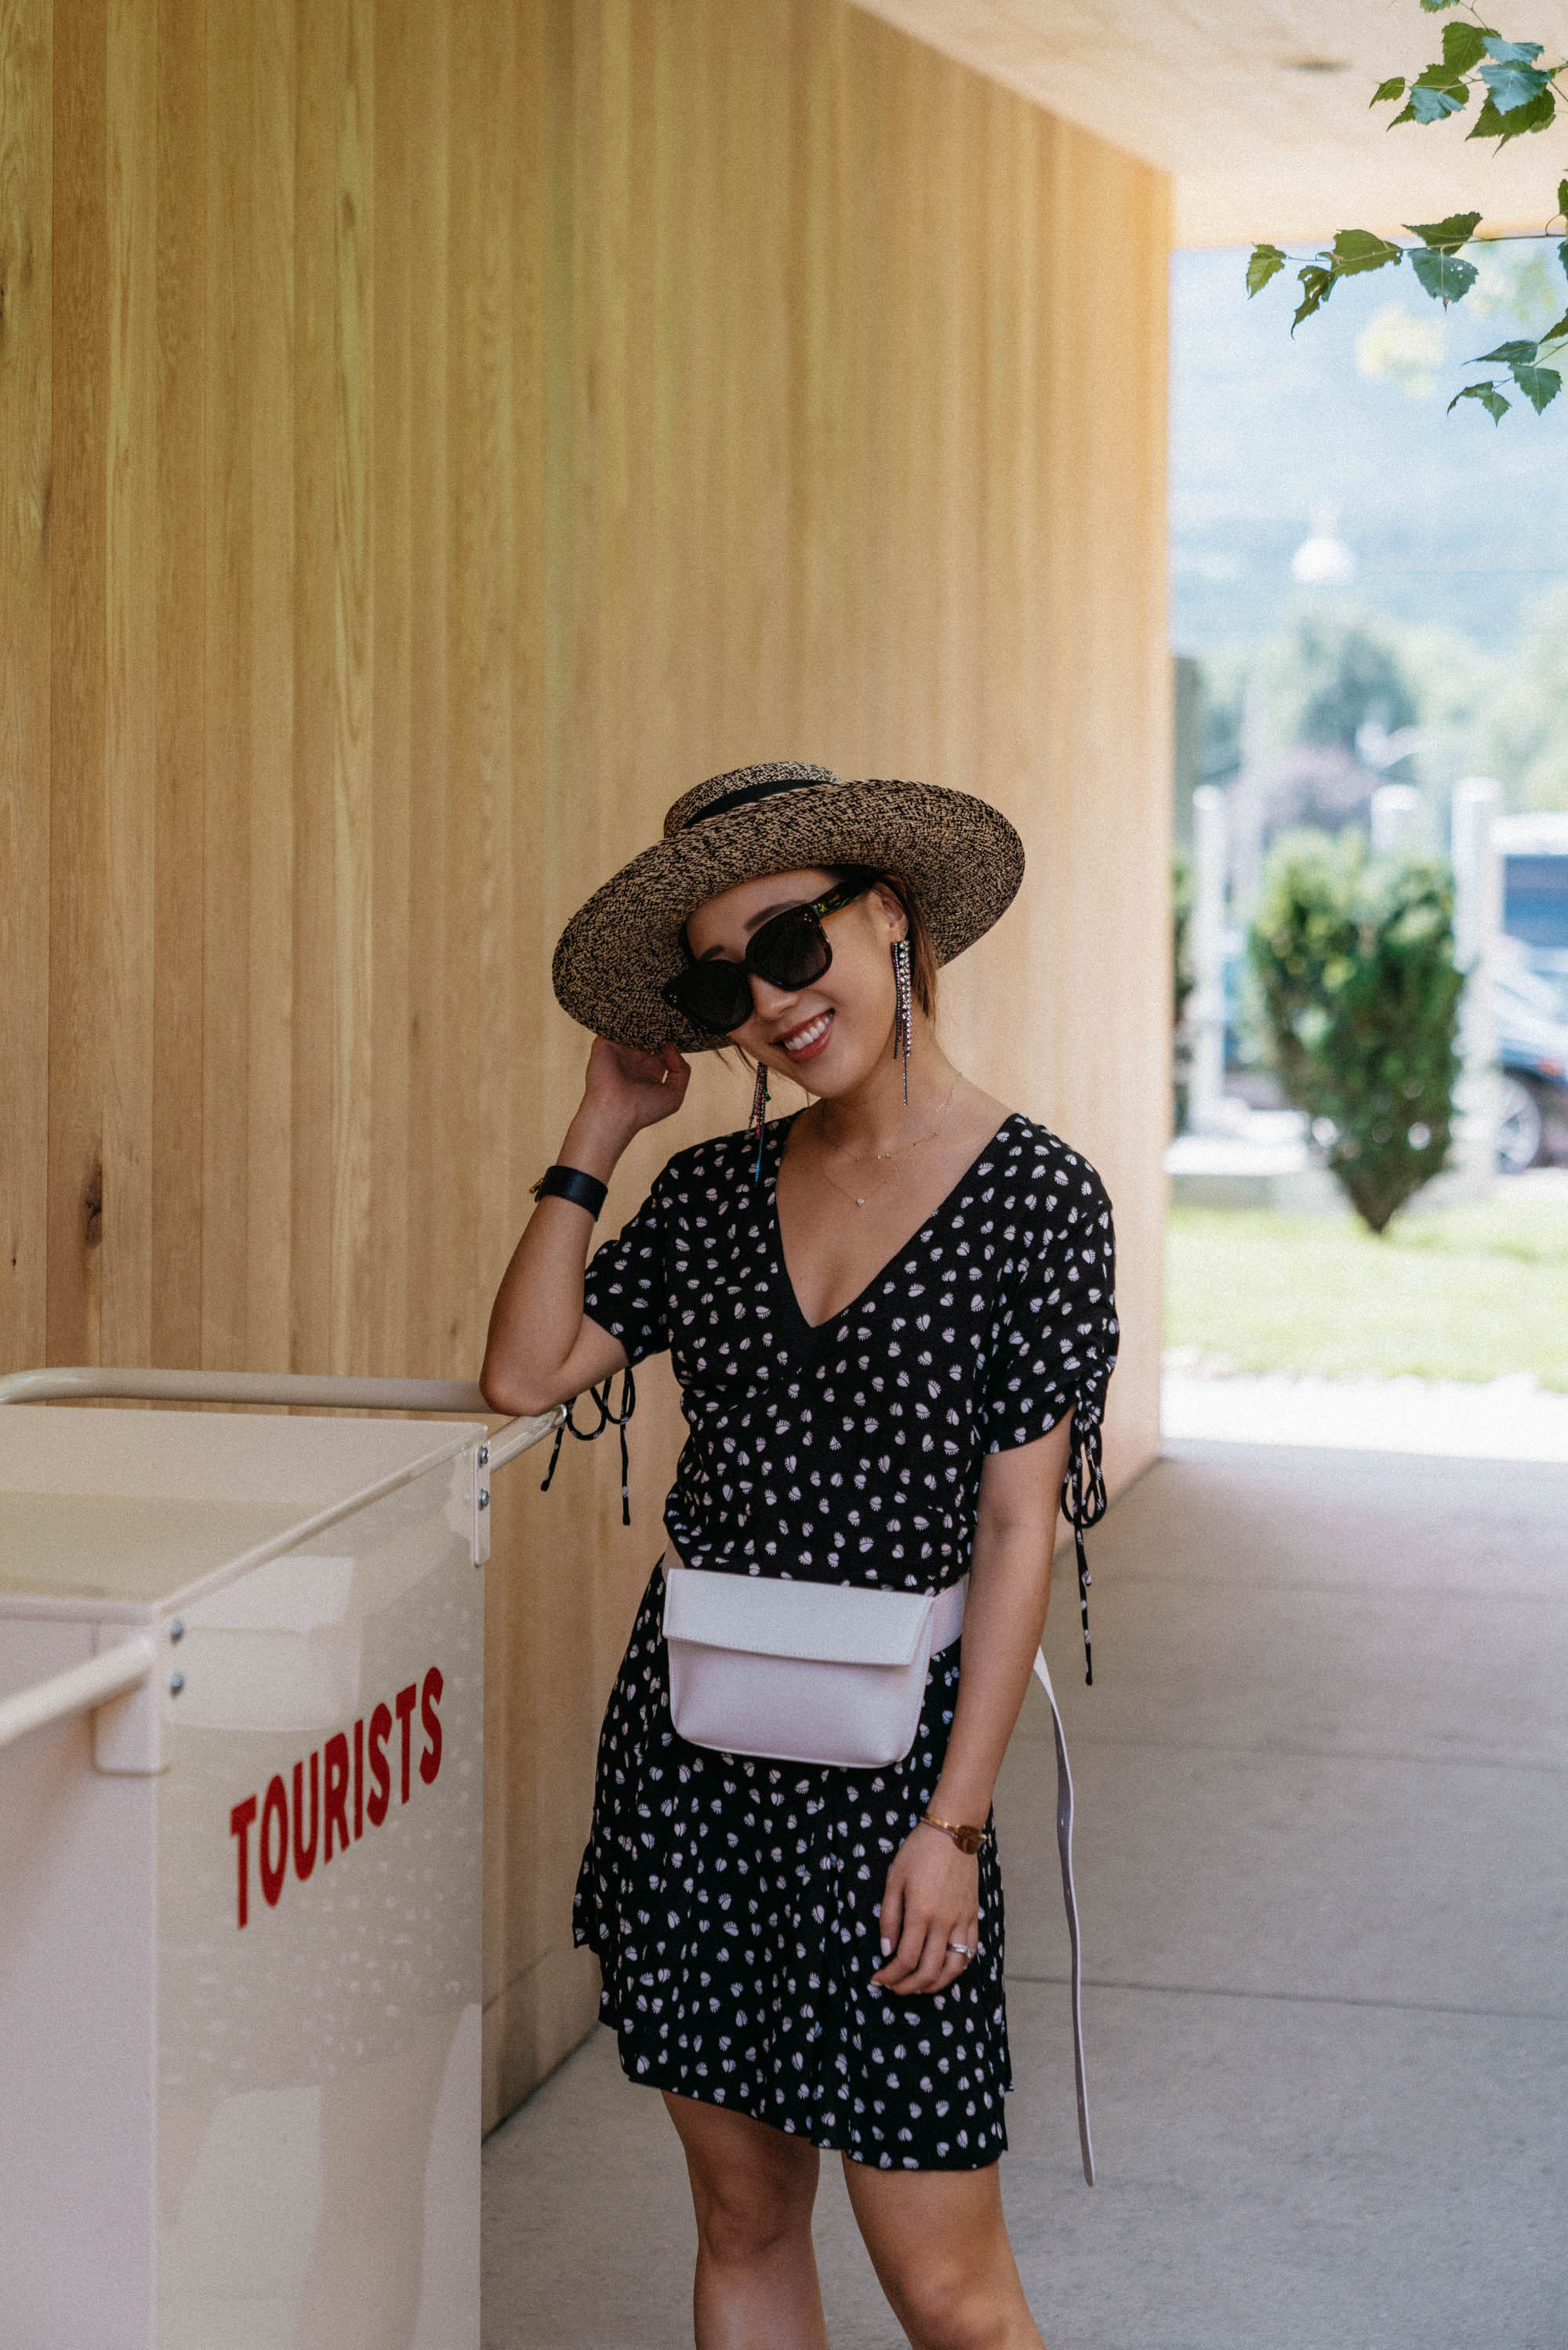 Rue Stiic Dress ,  Golden Goose Sneakers ,  Yvonne Kone Bag , Sensi Studio Hat, Area Earrings